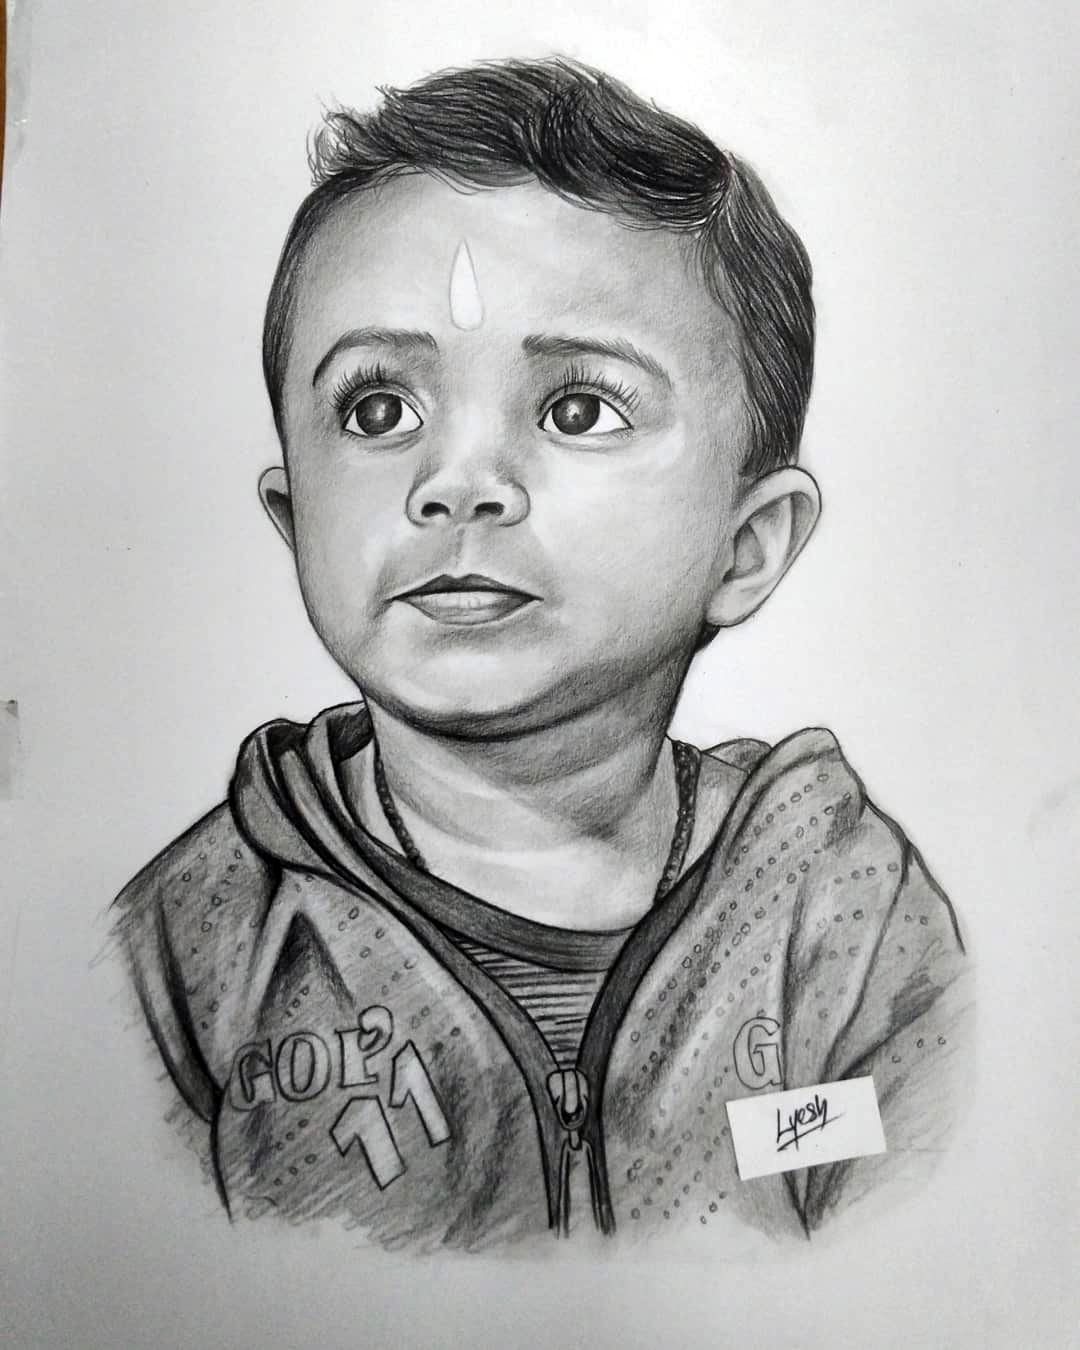 pencil drawing of a kid